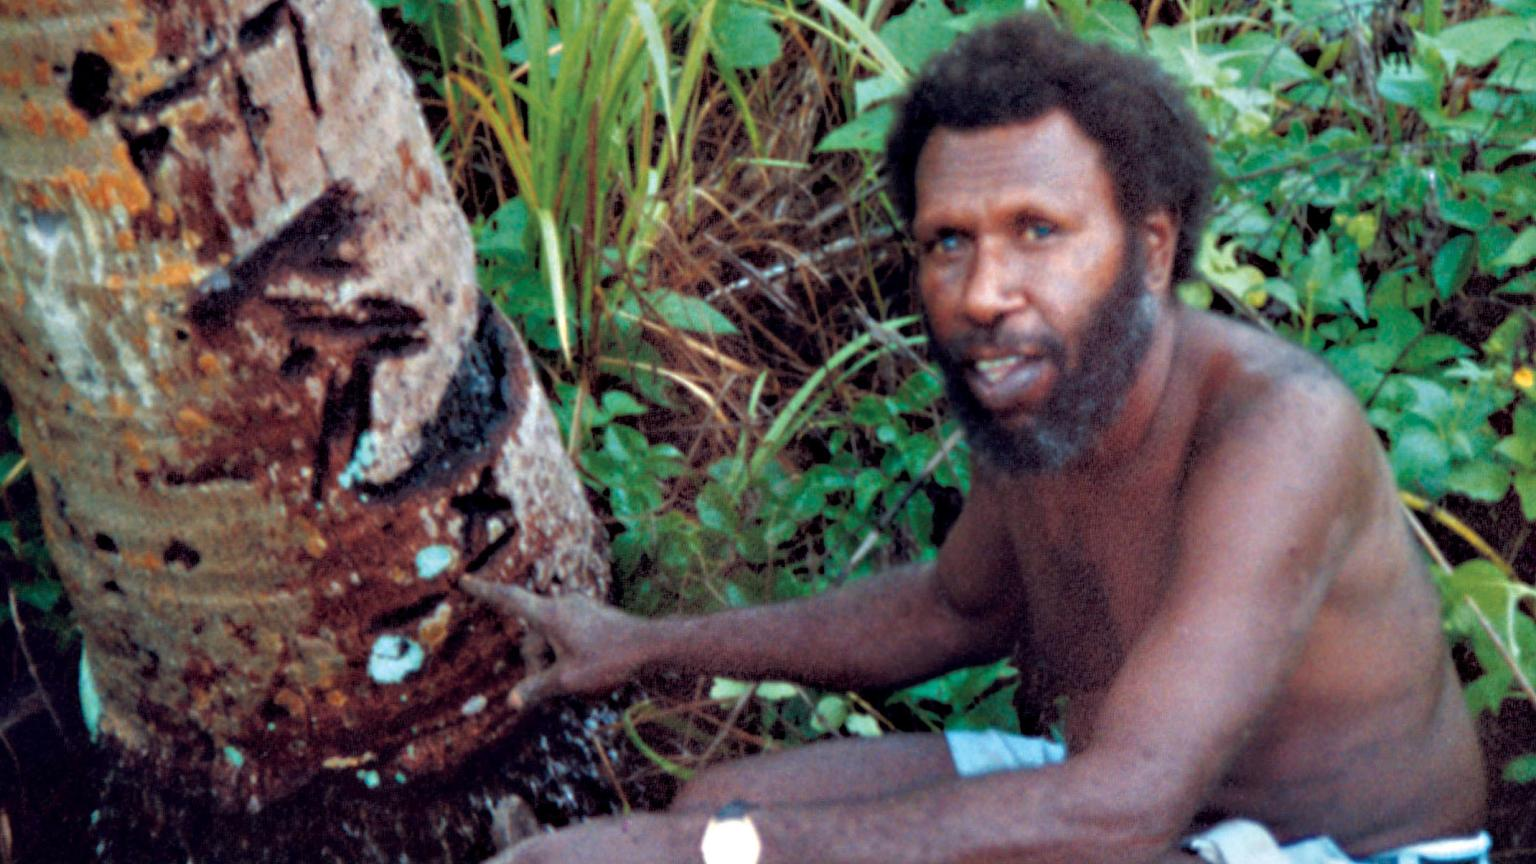 Eddie Koiki Mabo surrounded by a tree and plants in a garden.